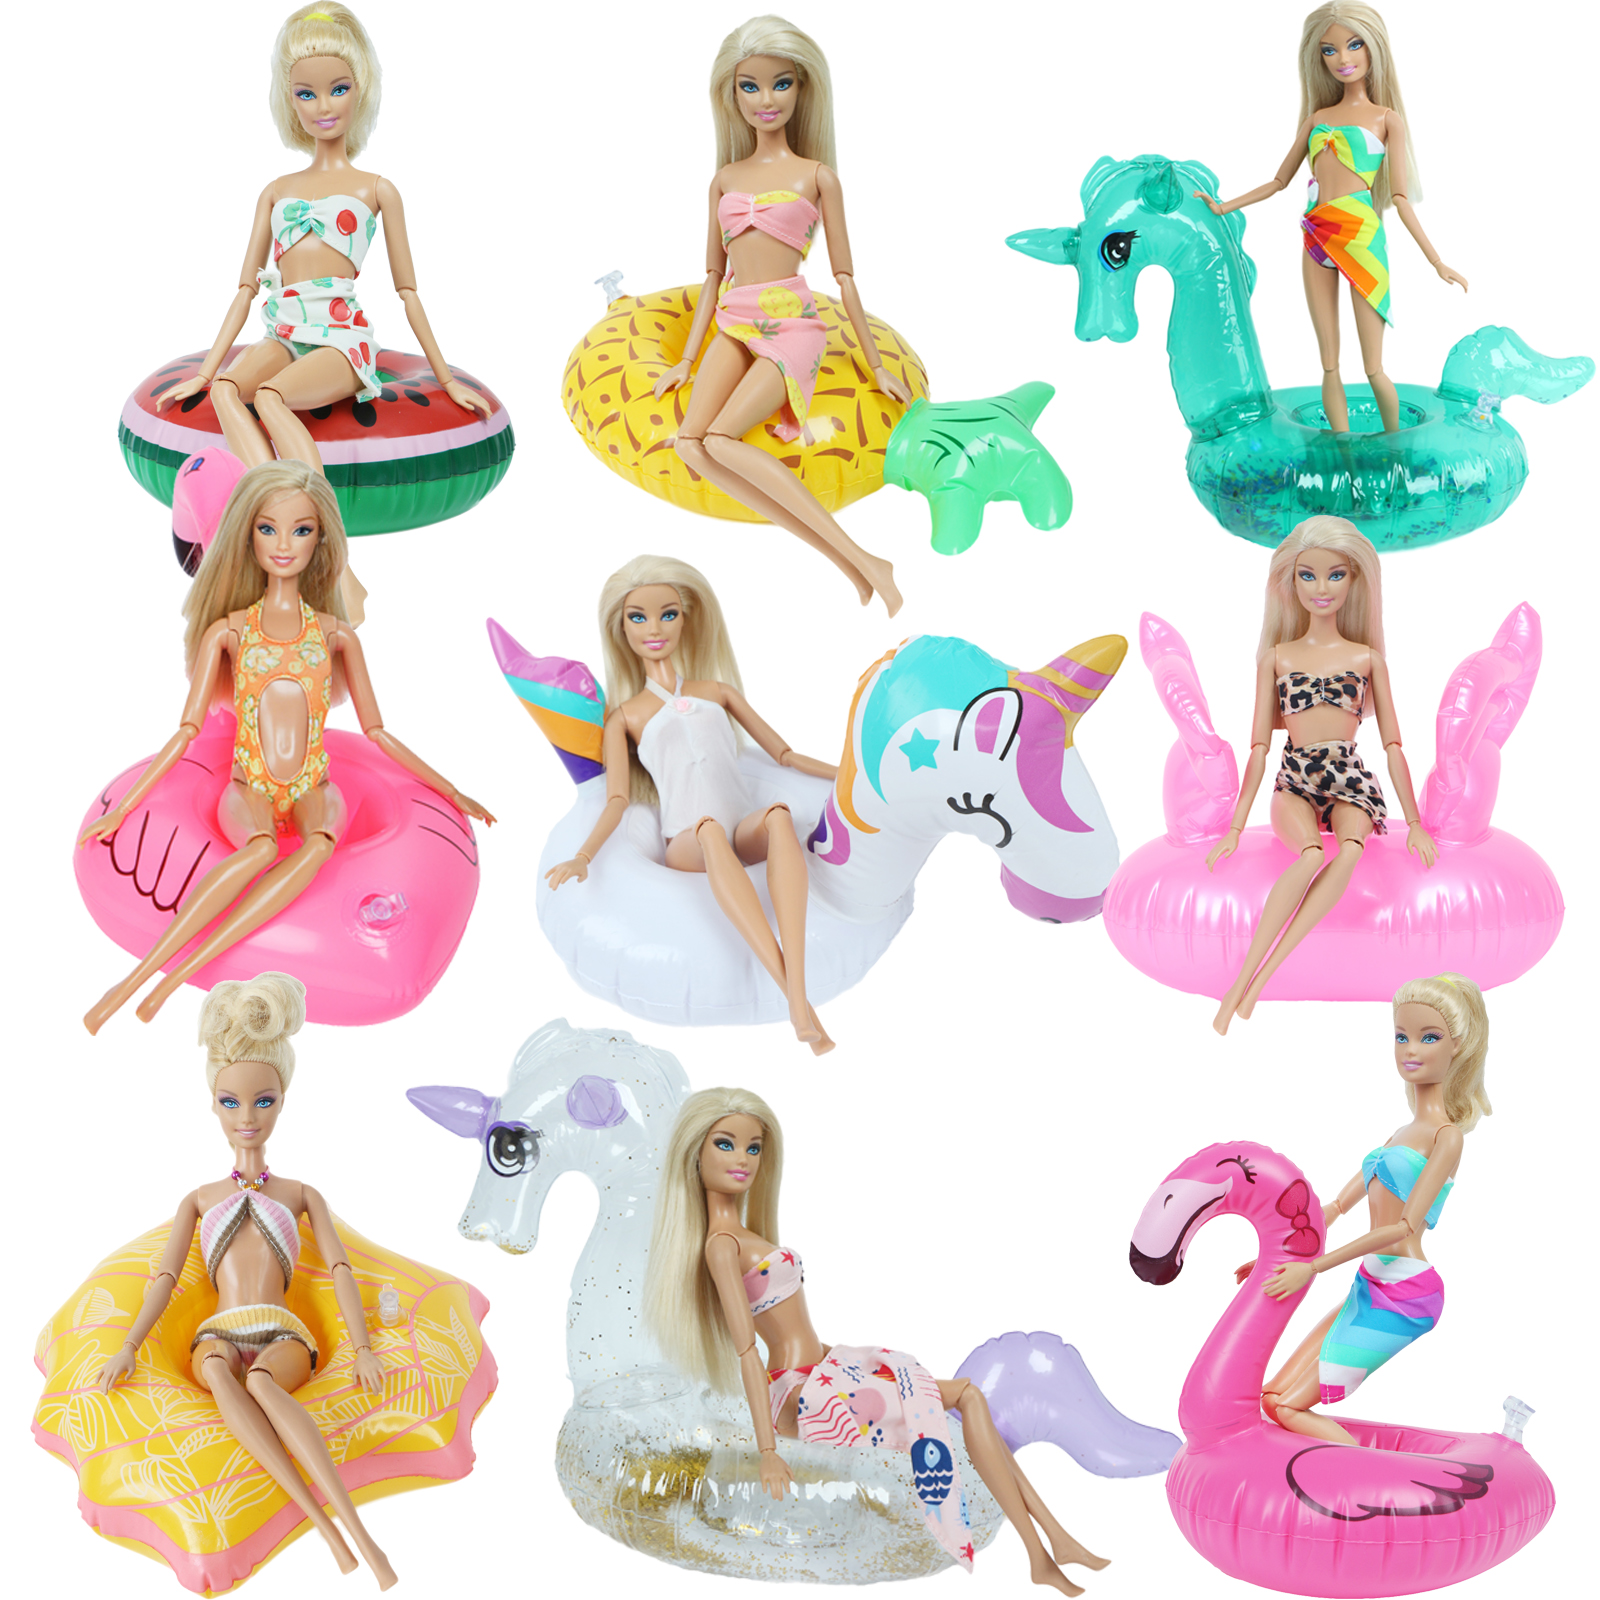 Fashion Handmade Swimsuit Beach Pool Party Wear Bikini Tops Pants Swimwear + Cute Swim Ring Clothes For Barbie Doll Accessories